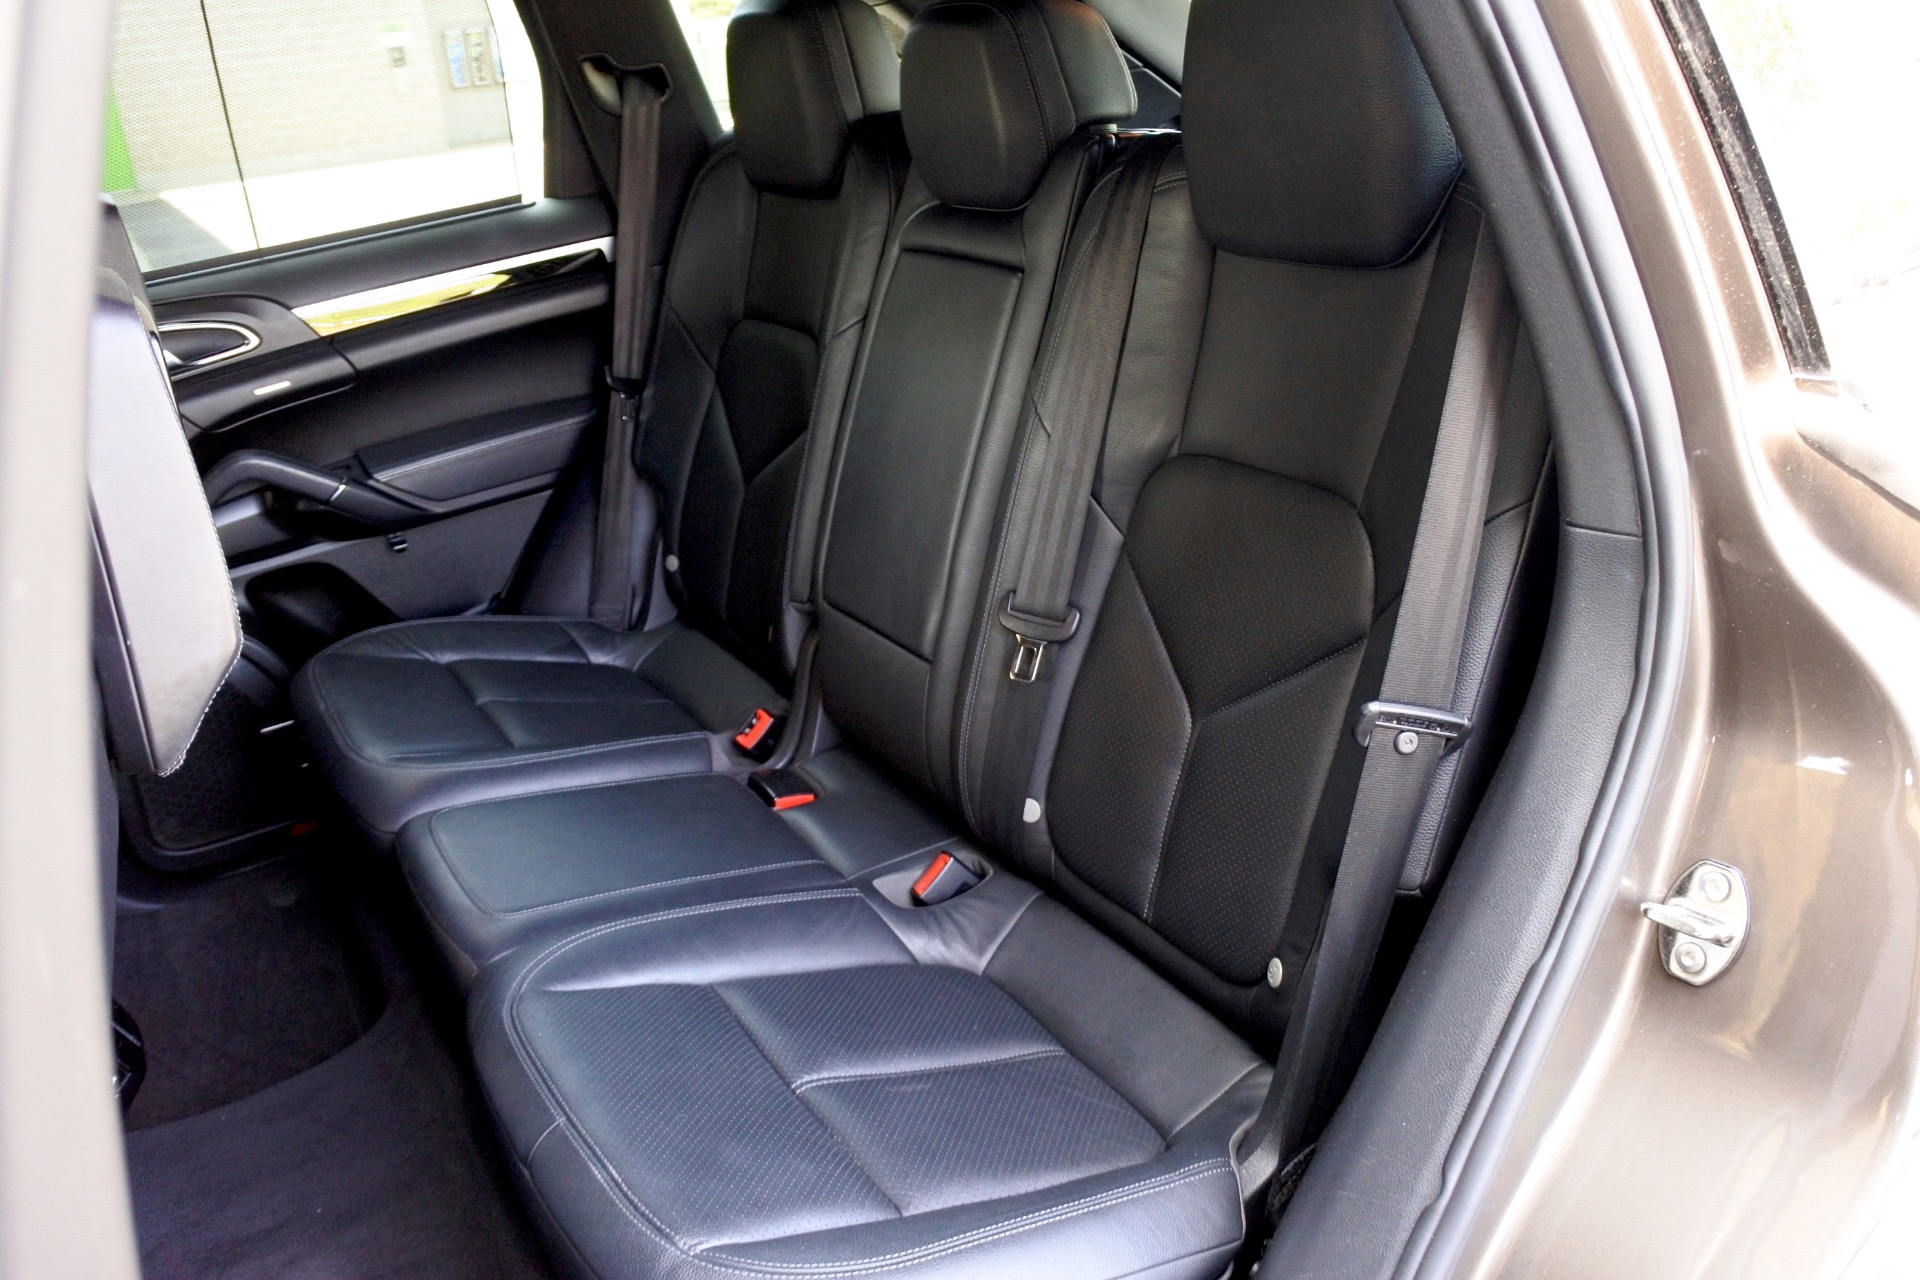 Used 2011 Porsche Cayenne AWD Used 2011 Porsche Cayenne AWD for sale  at Metro West Motorcars LLC in Shrewsbury MA 16